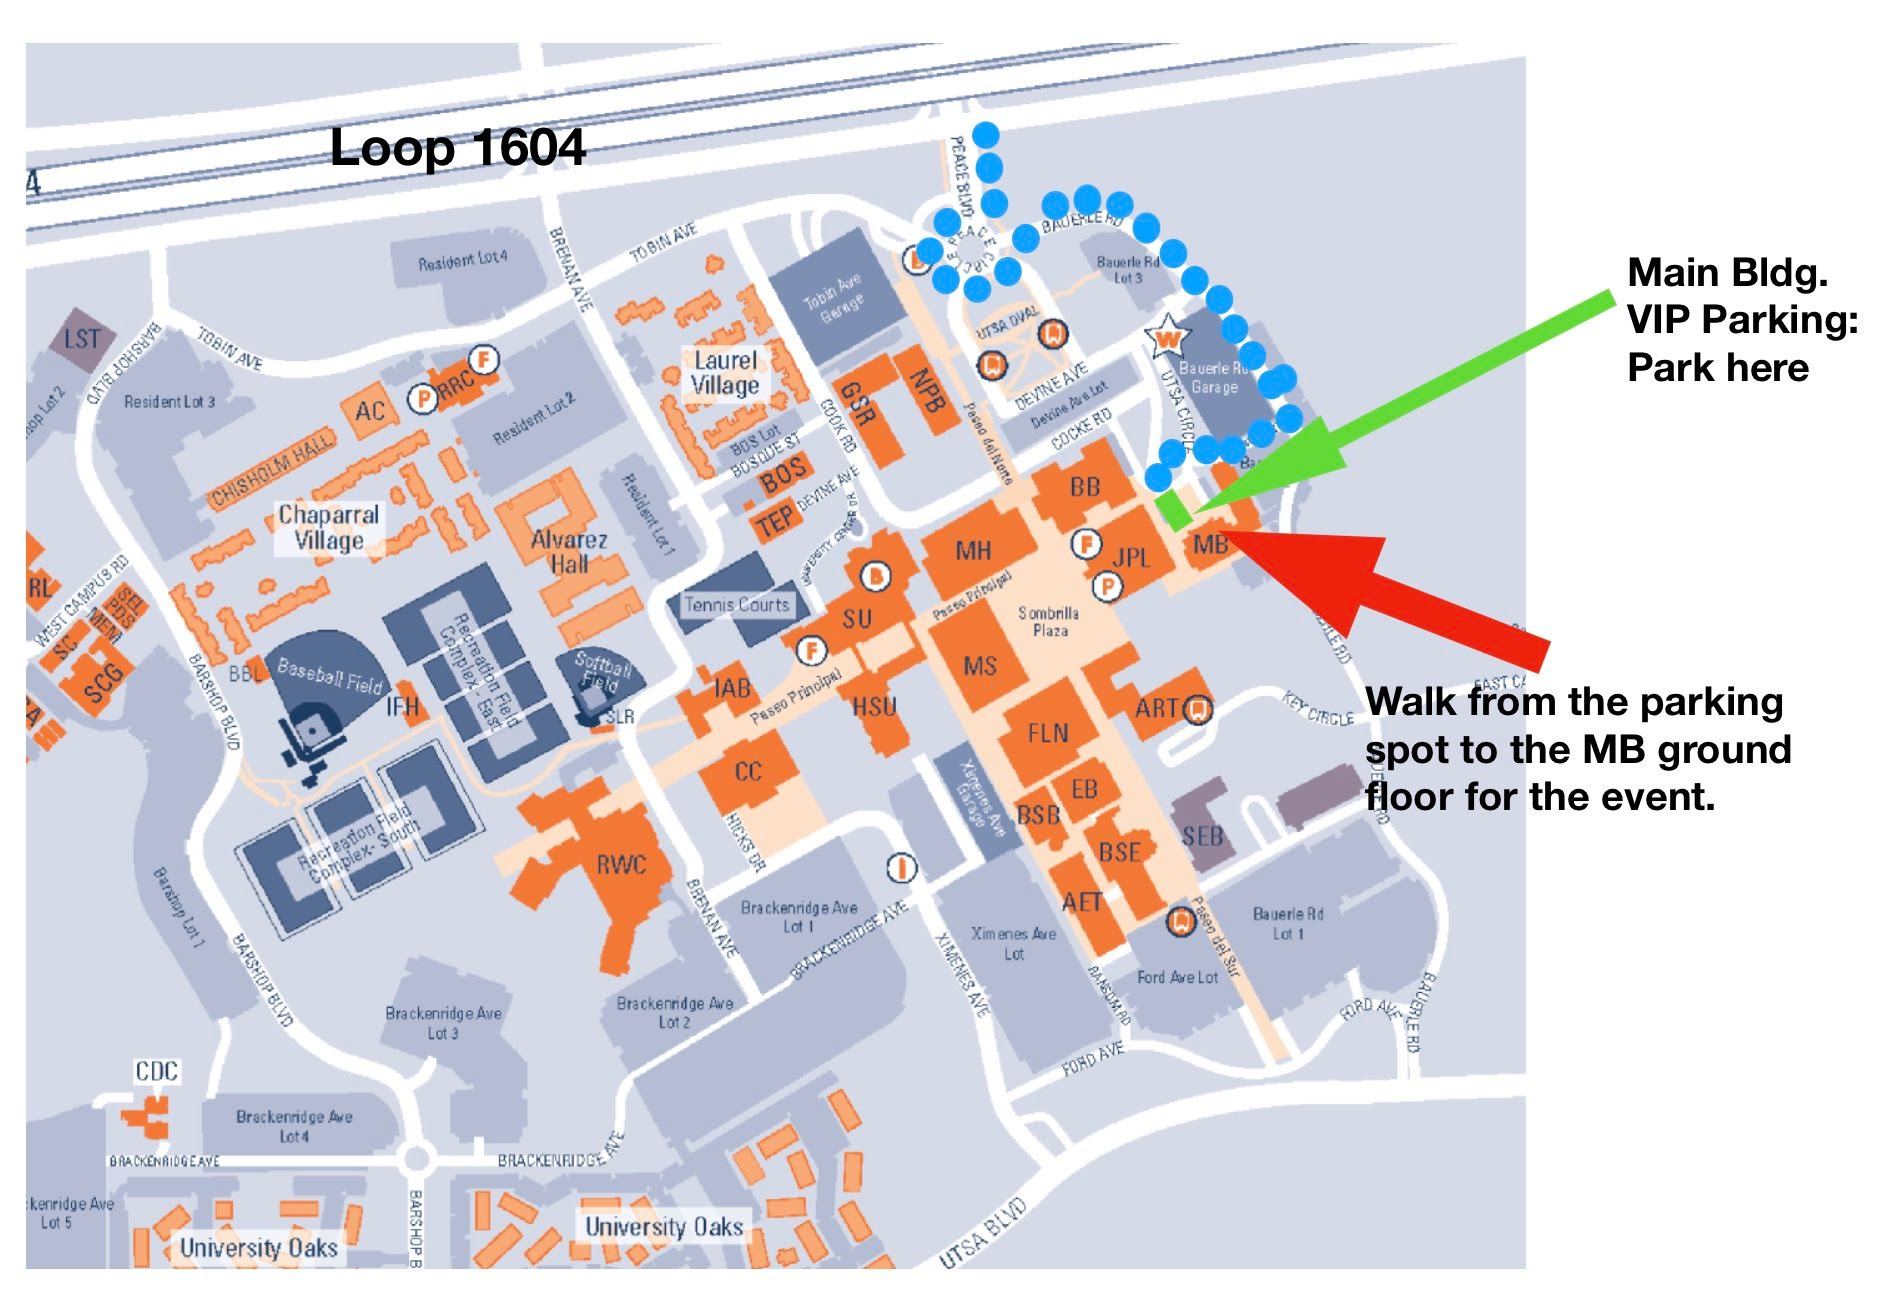 uc main campus map Vip Parking For Uc Events Utsa Campus Map With Driving Directions uc main campus map